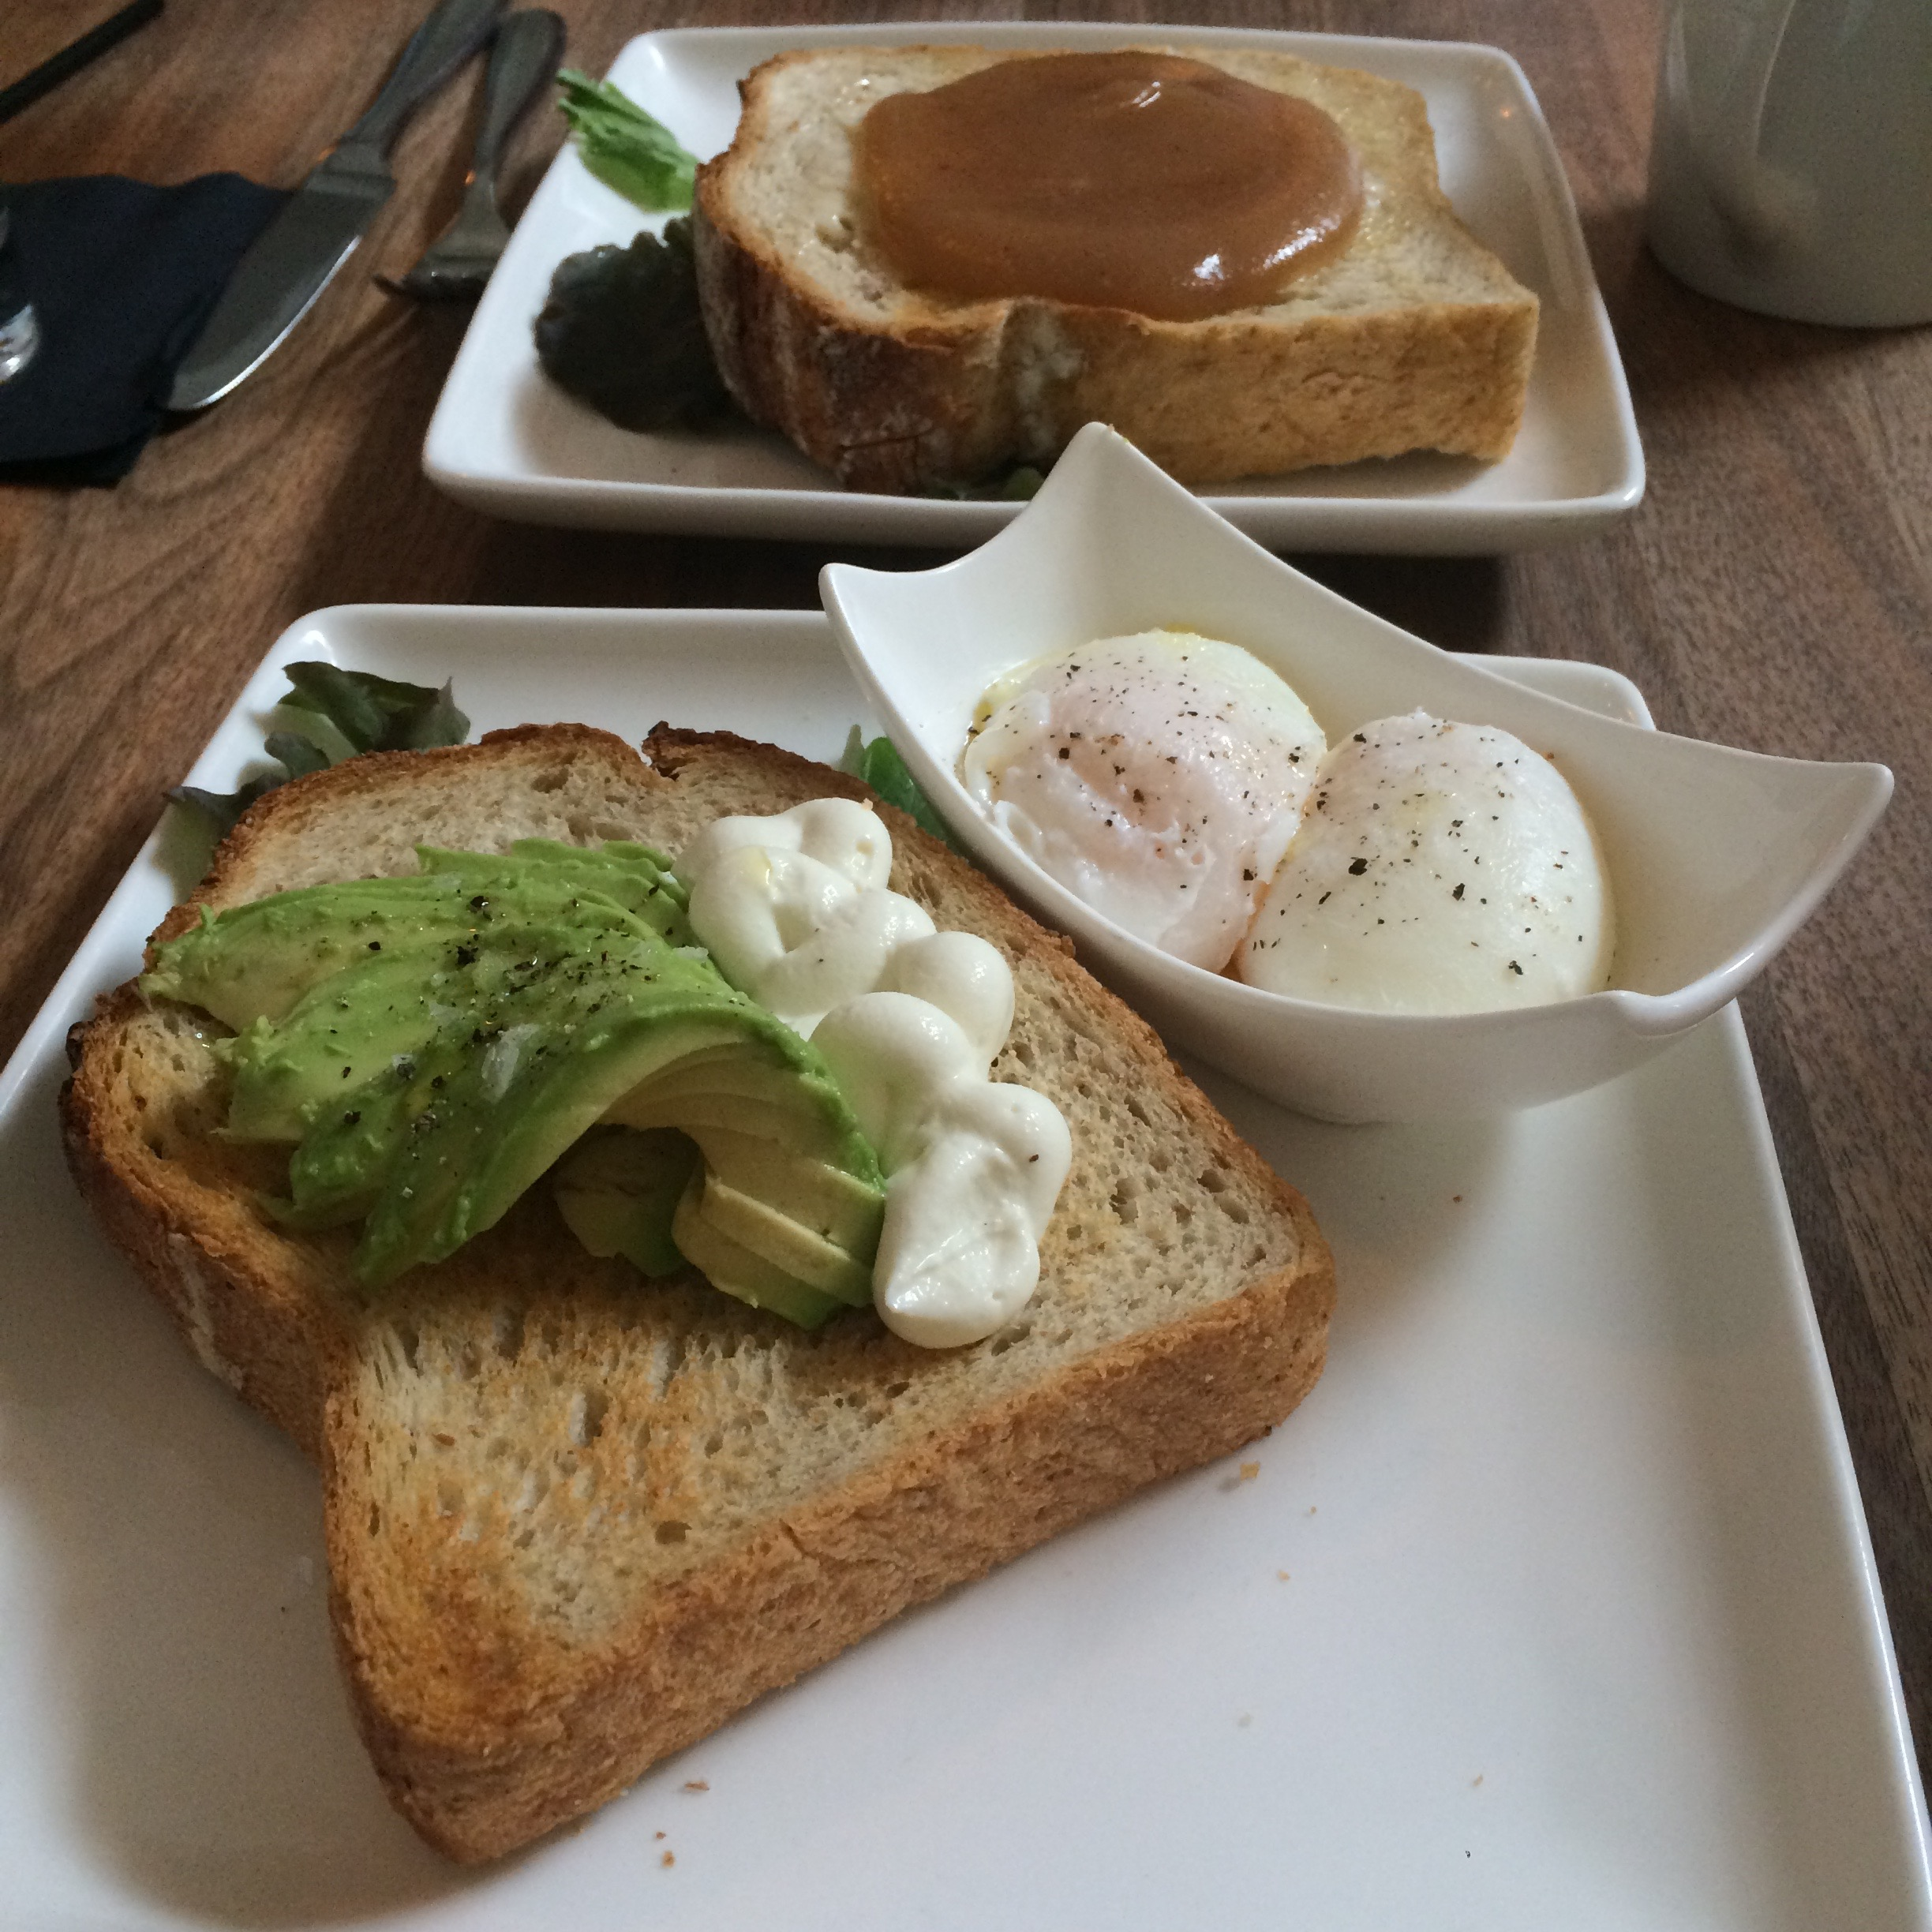 Toast with avocado and goat cheese mousse, side of poached eggs, and toast with apple butter.  (Photo by Arielle Weg)